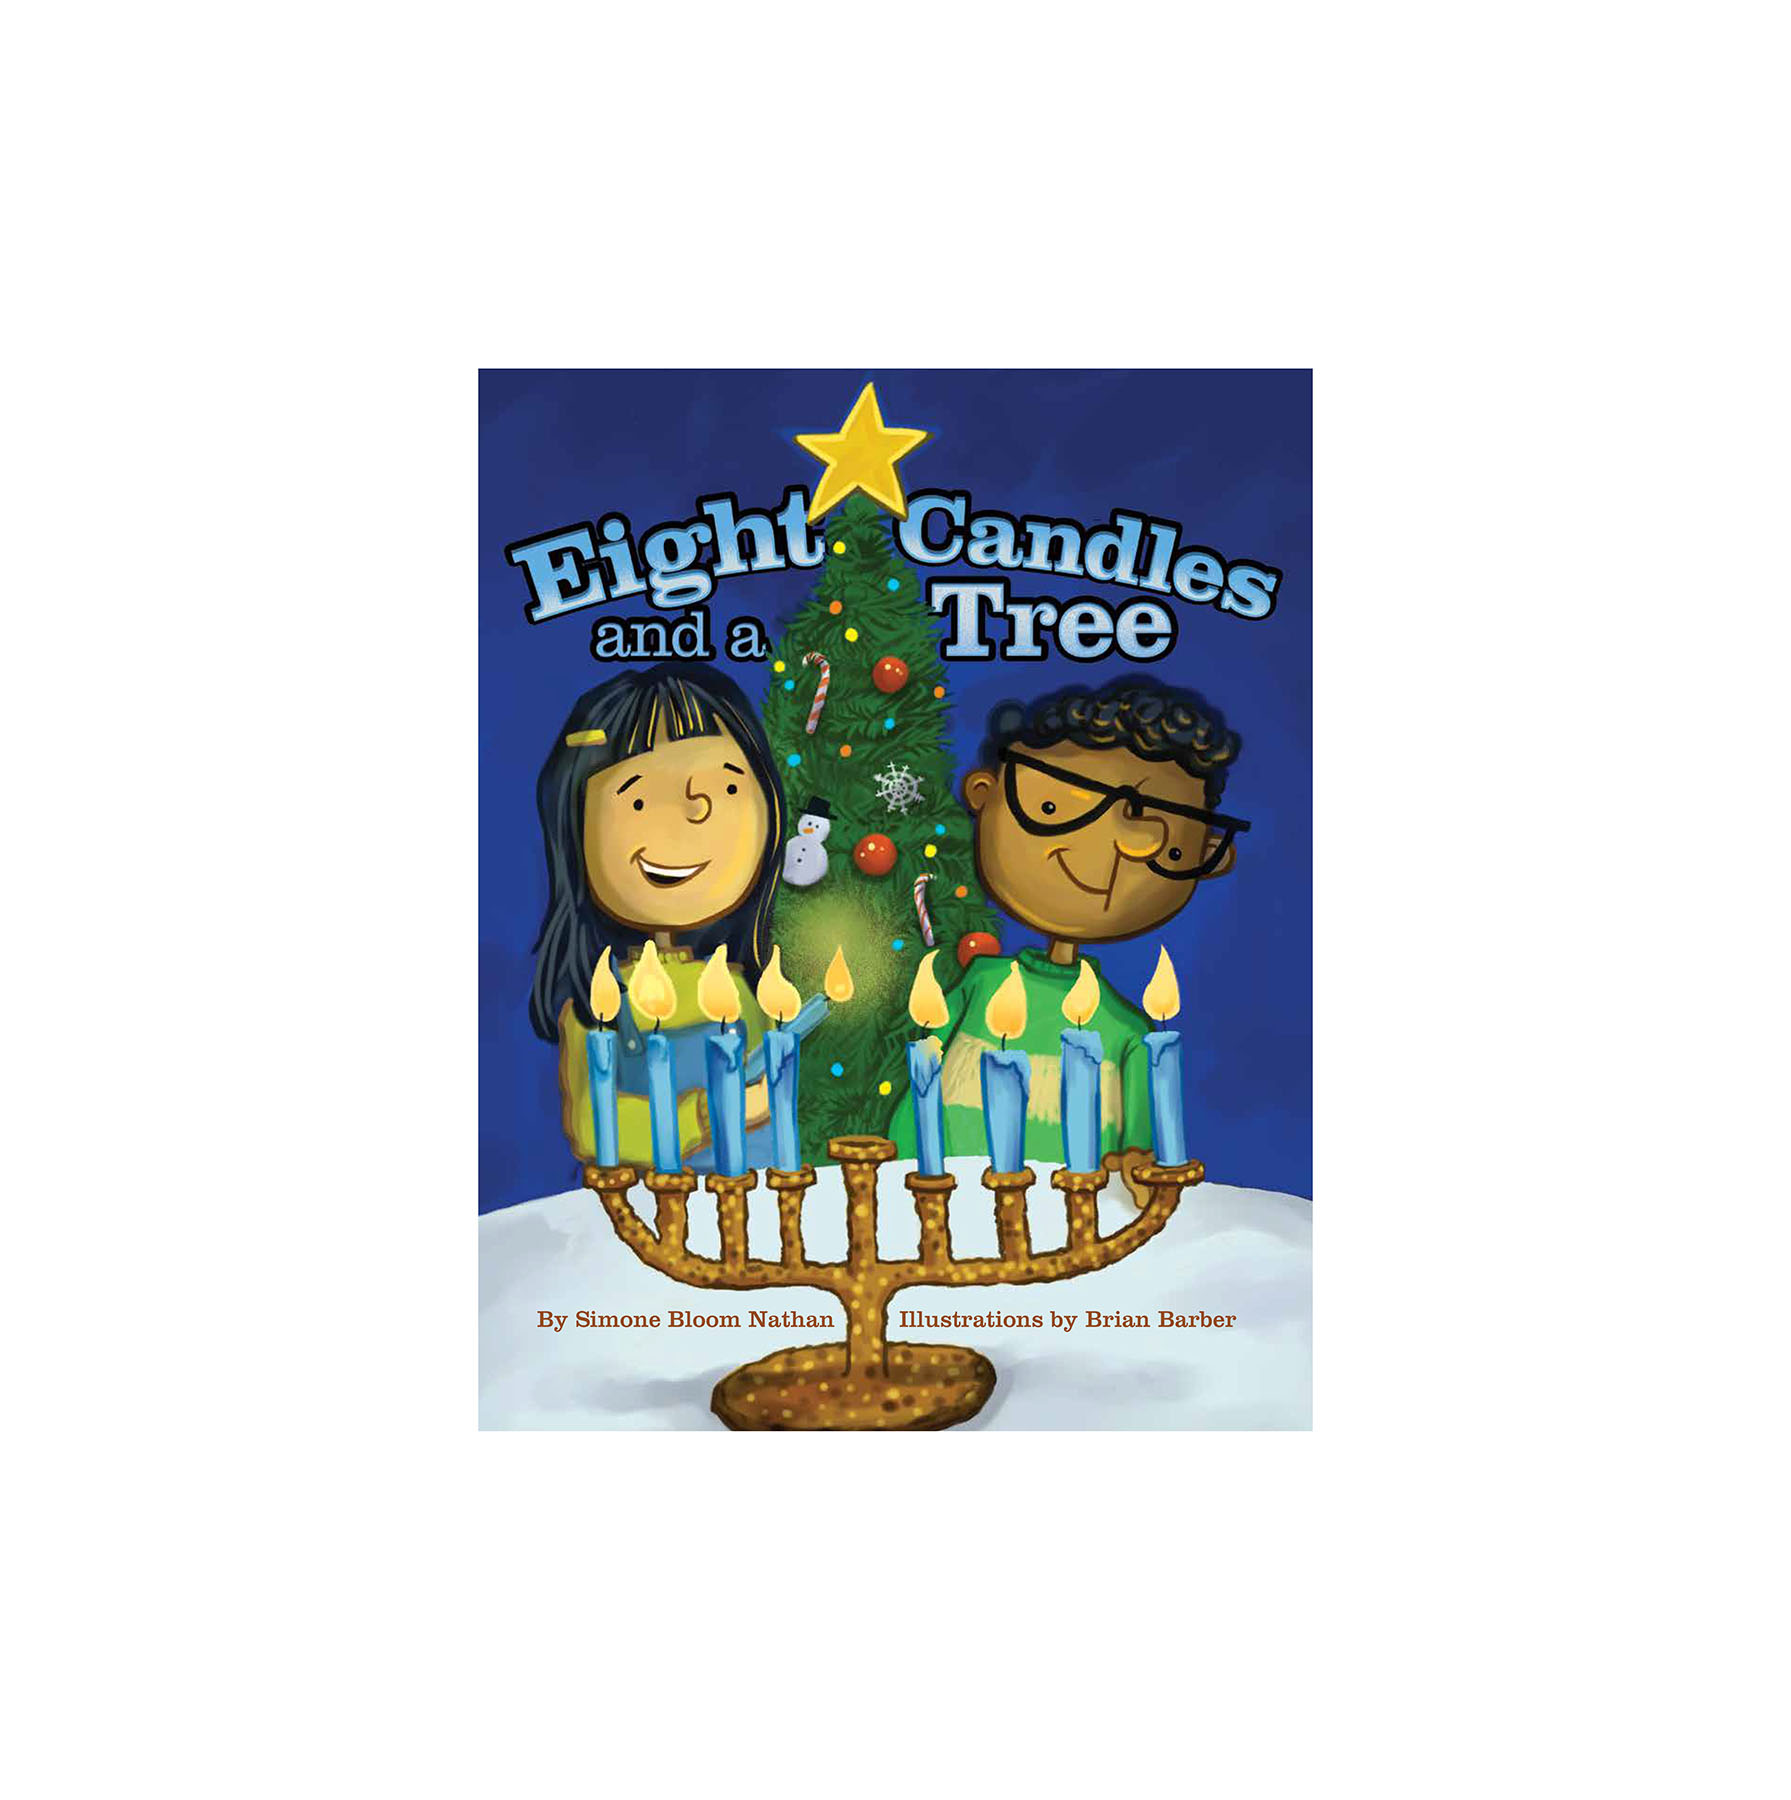 Eight Candles and a Tree, by Simone Bloom Nathan